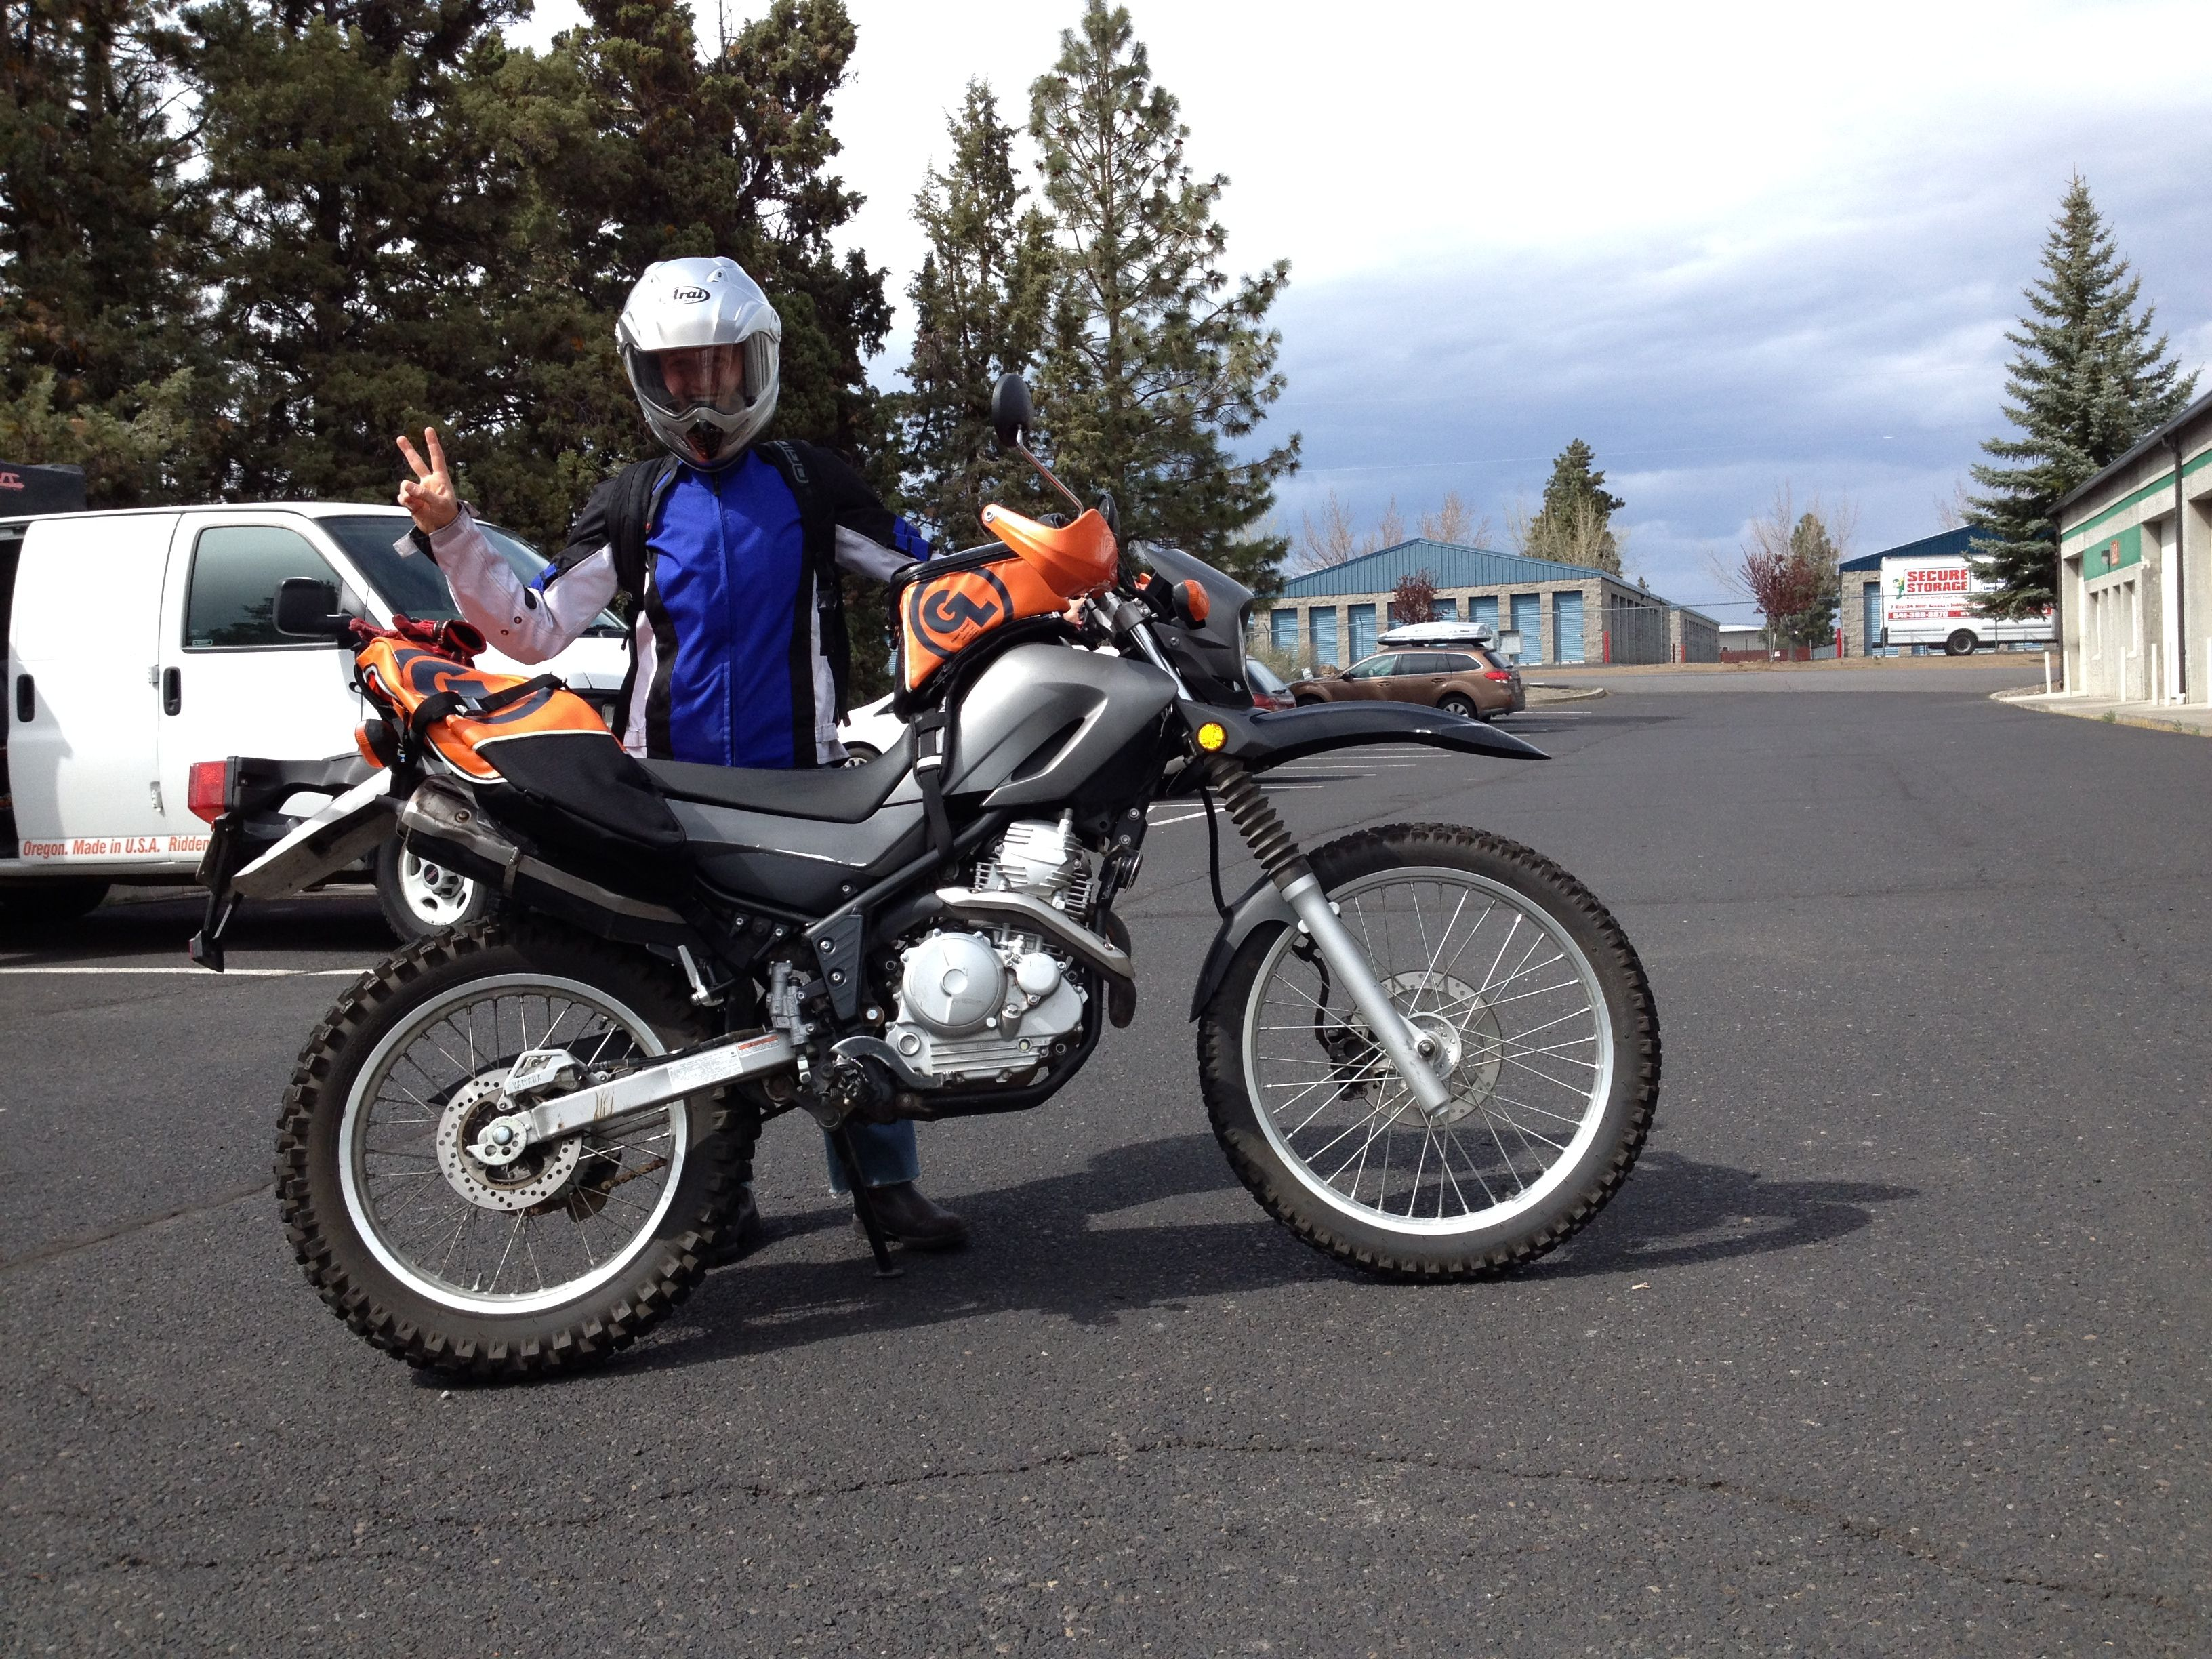 Xt250 With Giant Loop Saddlebags Riding Pinterest Tw200